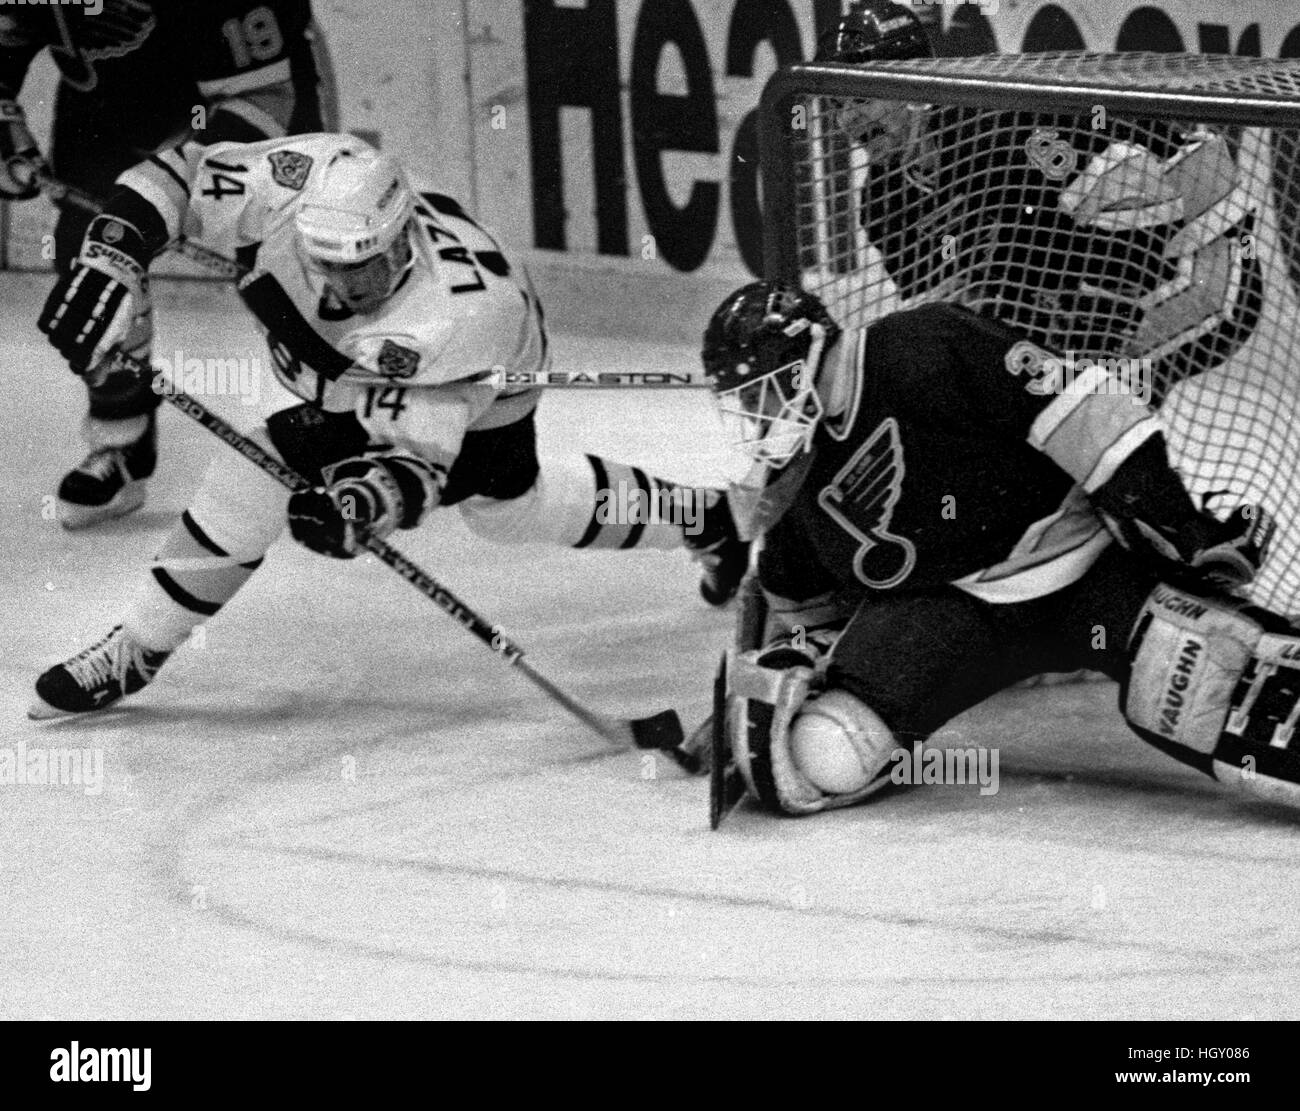 Vintage Hockey Black And White Stock Photos & Images